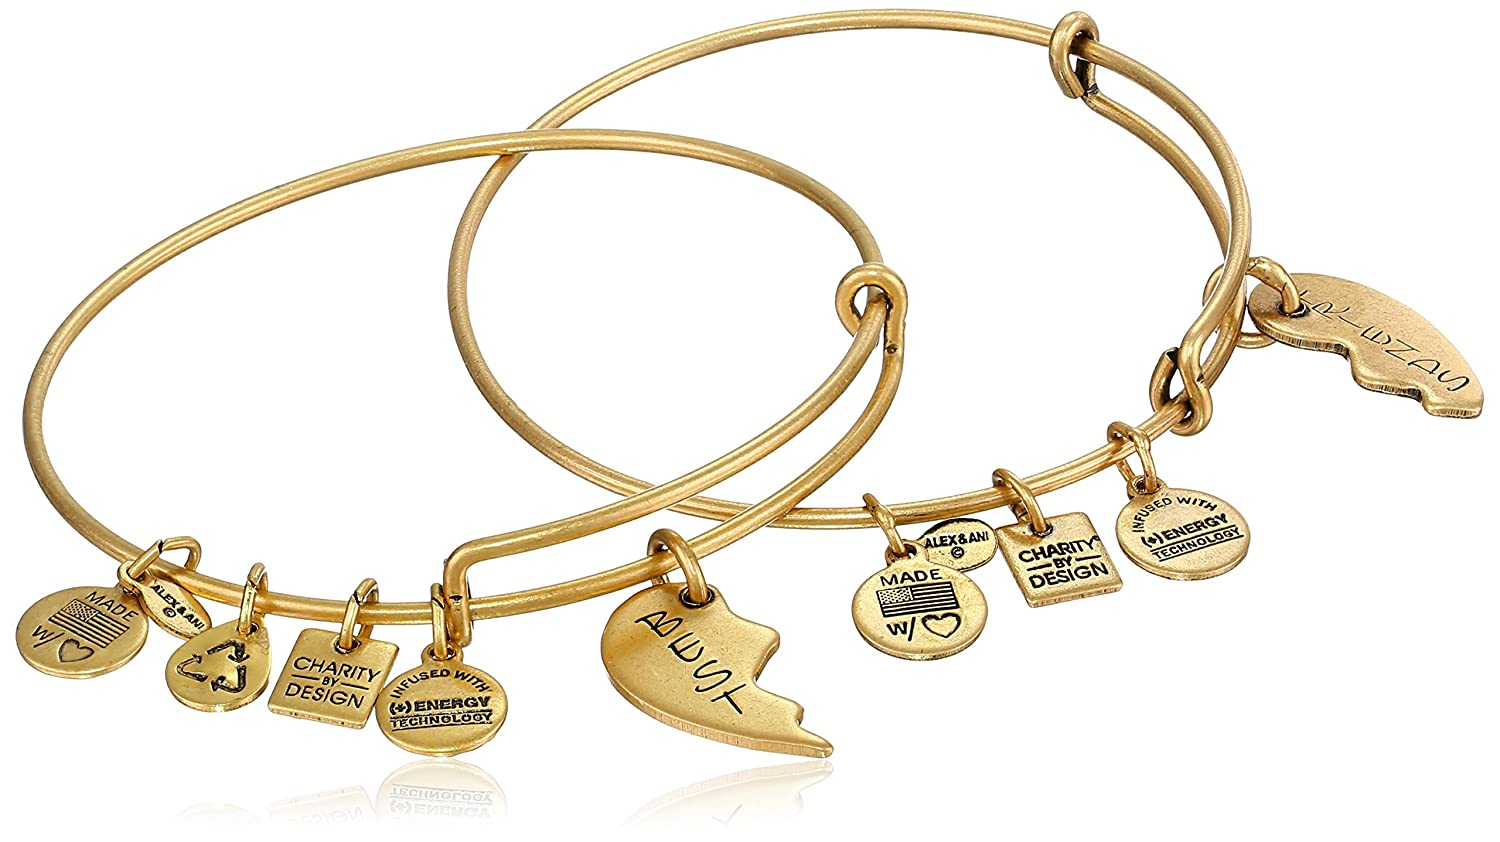 Alex Ani Charity Friends Bracelet Image 1